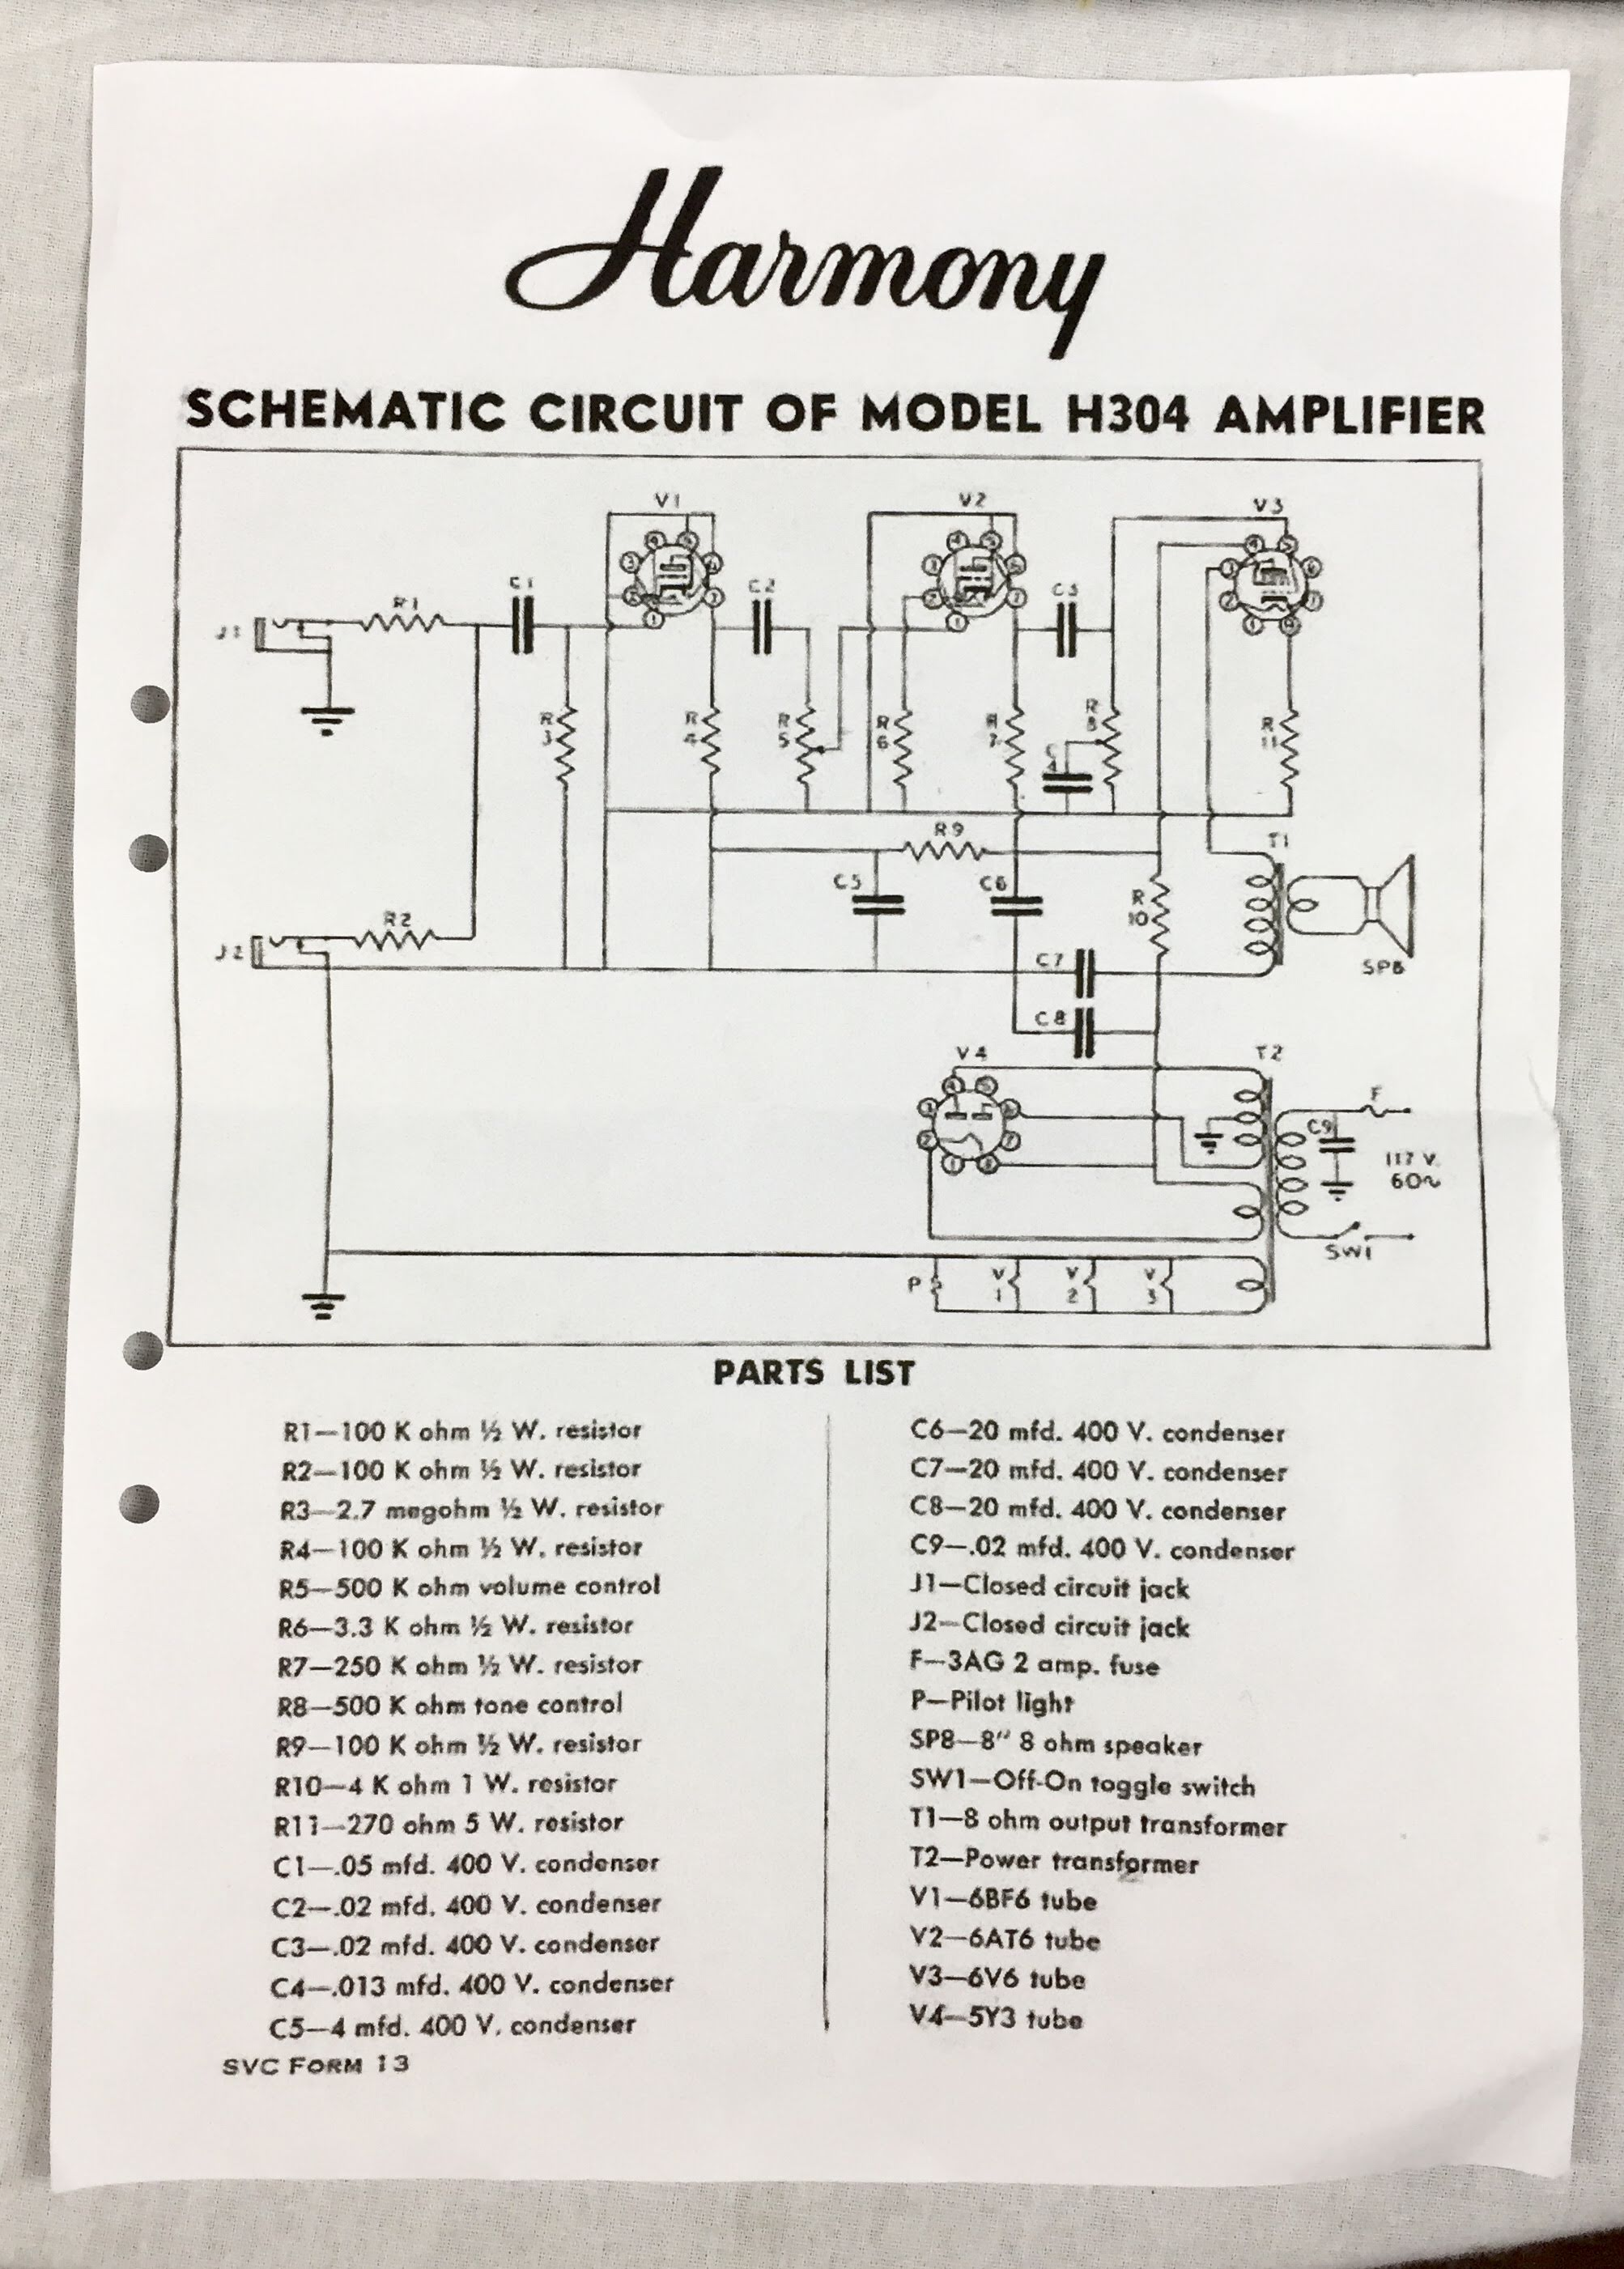 Harmony Amp Schematic - Wiring Diagram Data on